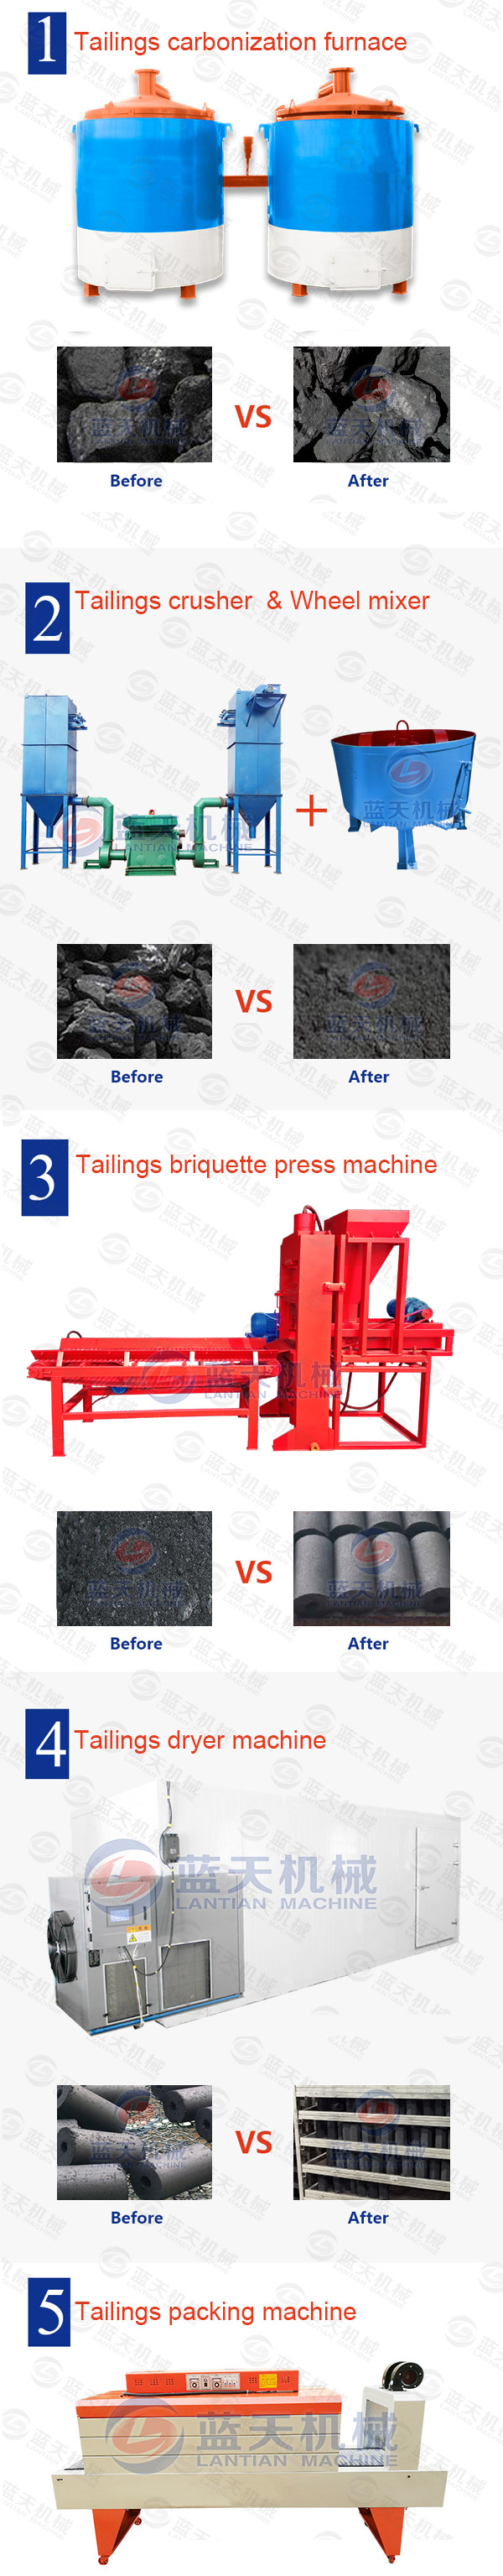 Tailings Briquette Press Machine Production Line